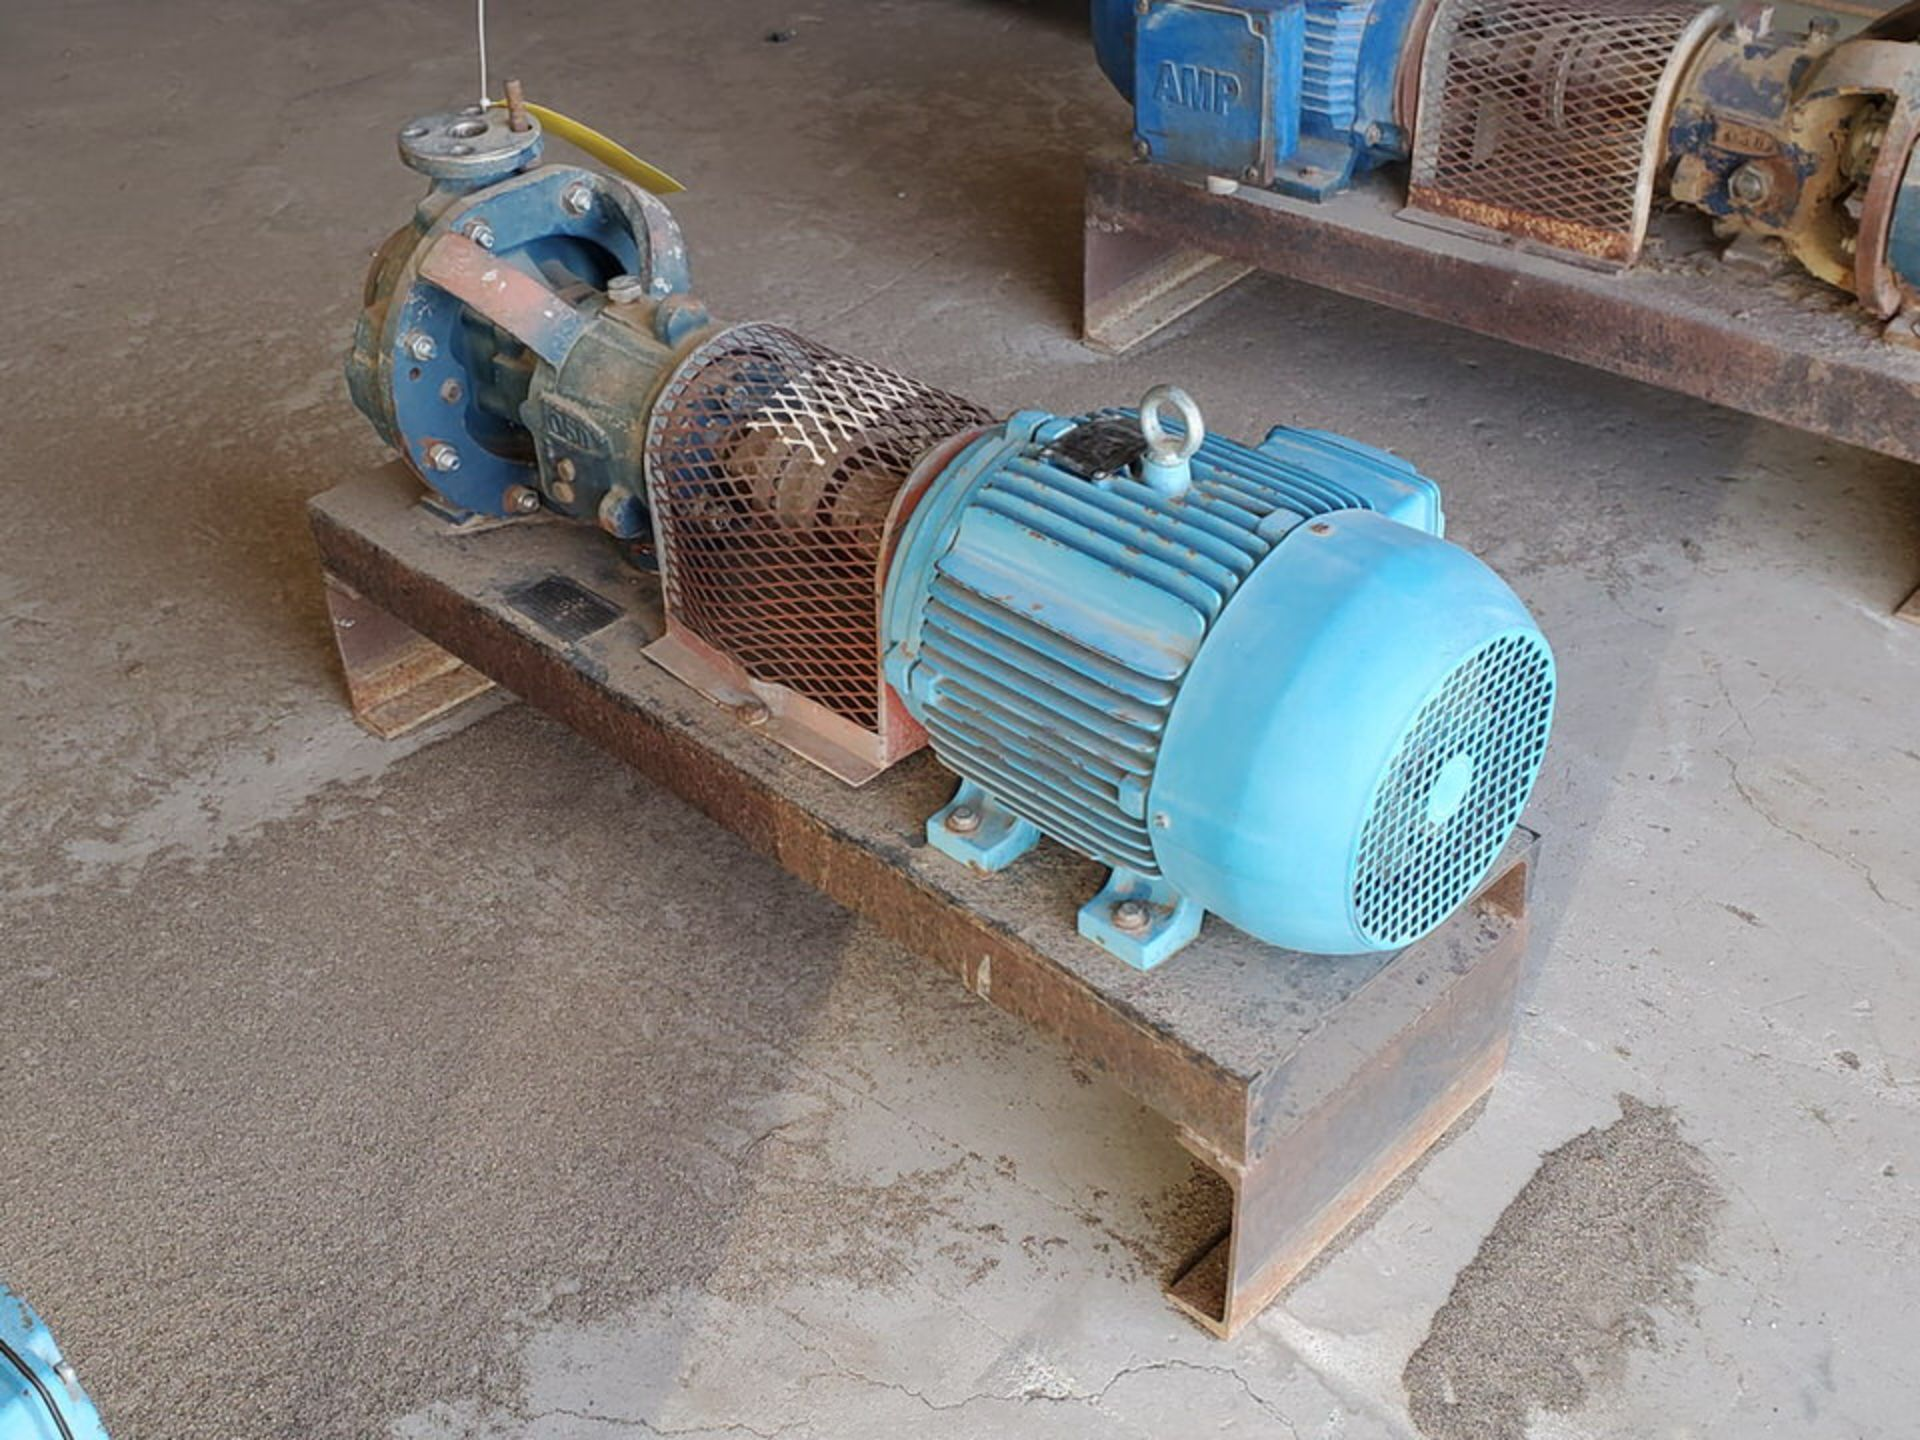 American-Marsh Pumps 1L1x1.5-6RV OSD Centrifugal Pump W/ 7.5HP Weg Motor - Image 5 of 9